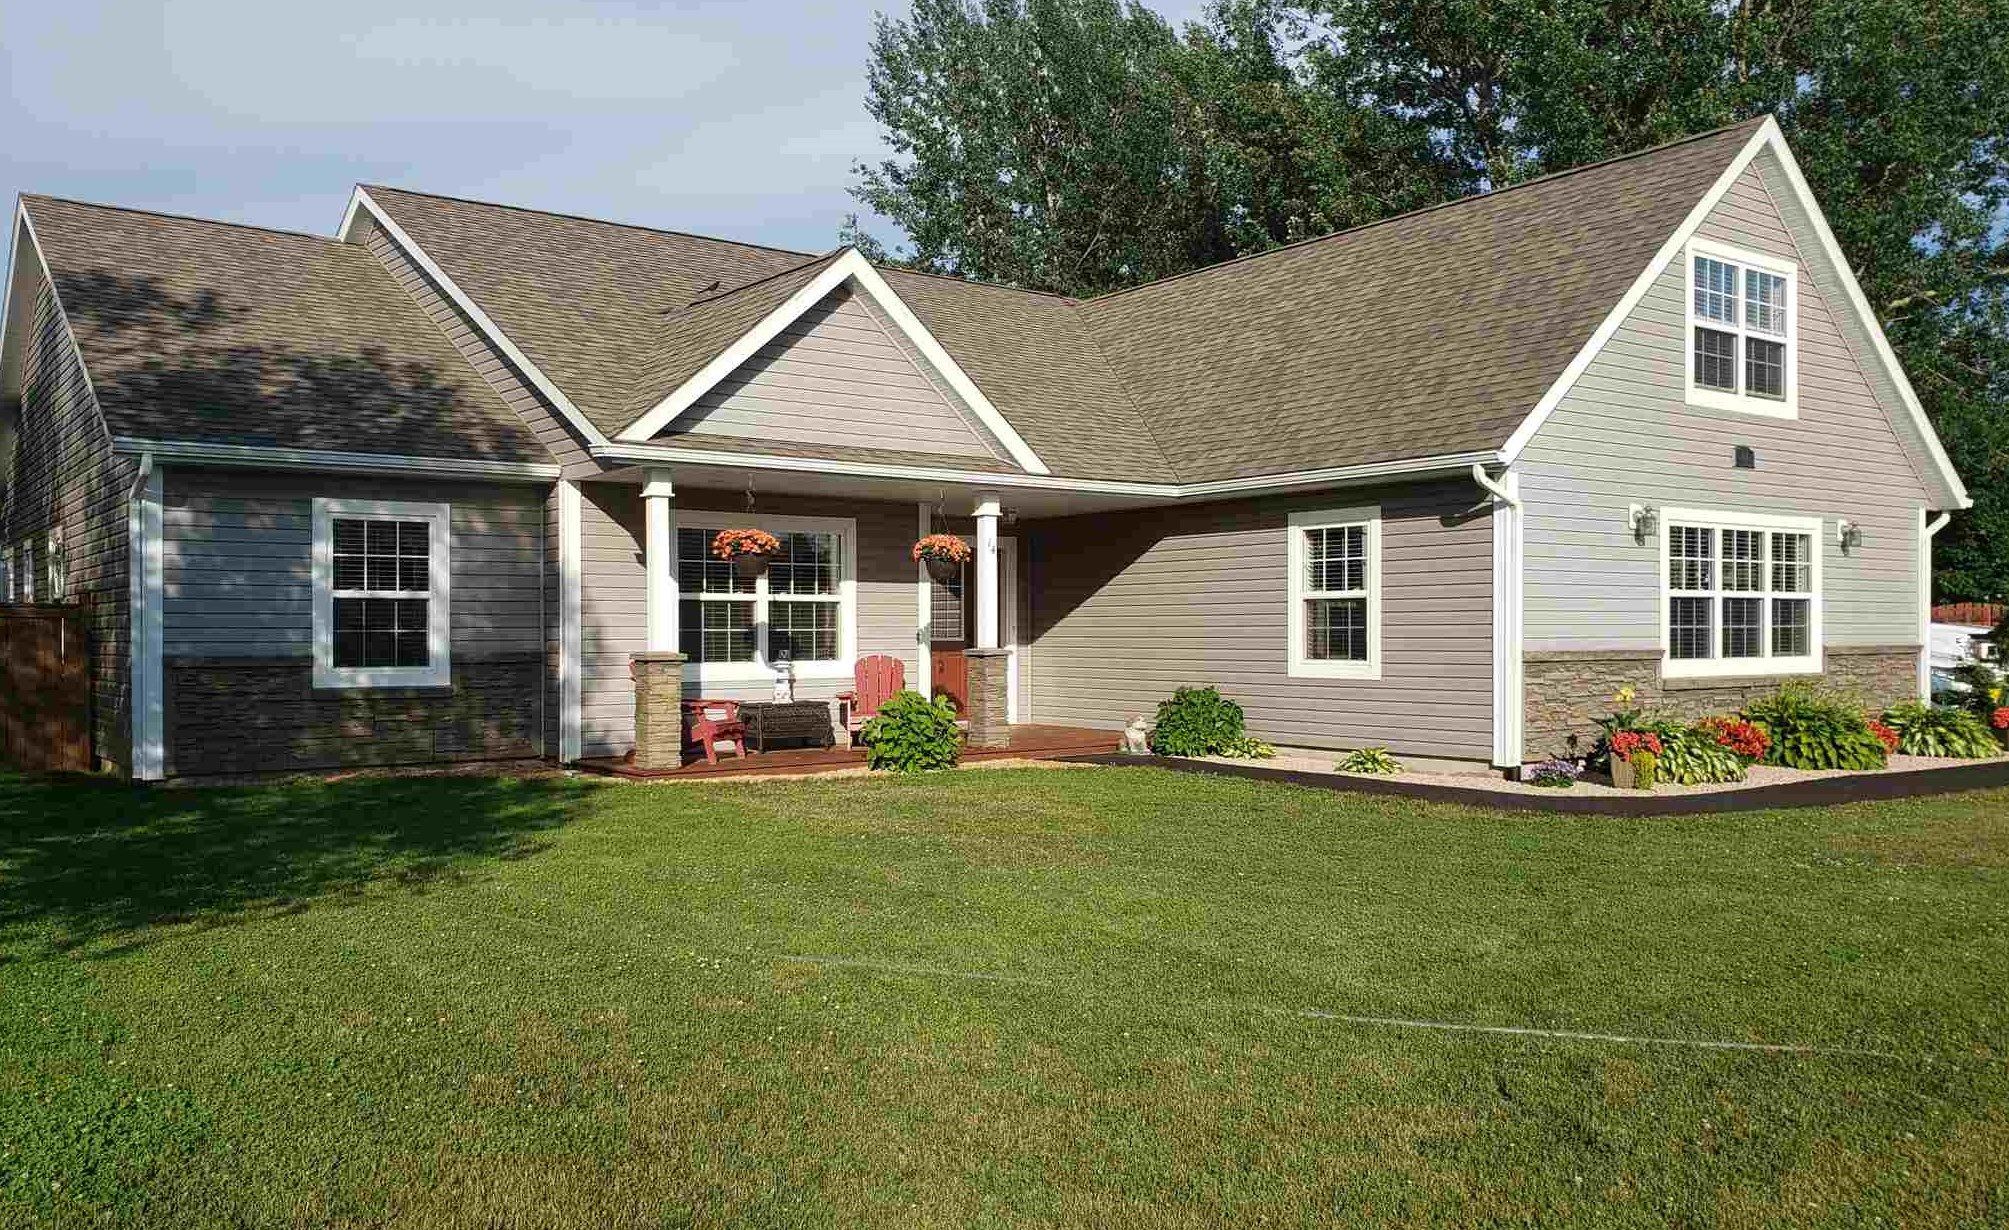 Main Photo: 14 Isaac Avenue in Kingston: 404-Kings County Residential for sale (Annapolis Valley)  : MLS®# 202101449